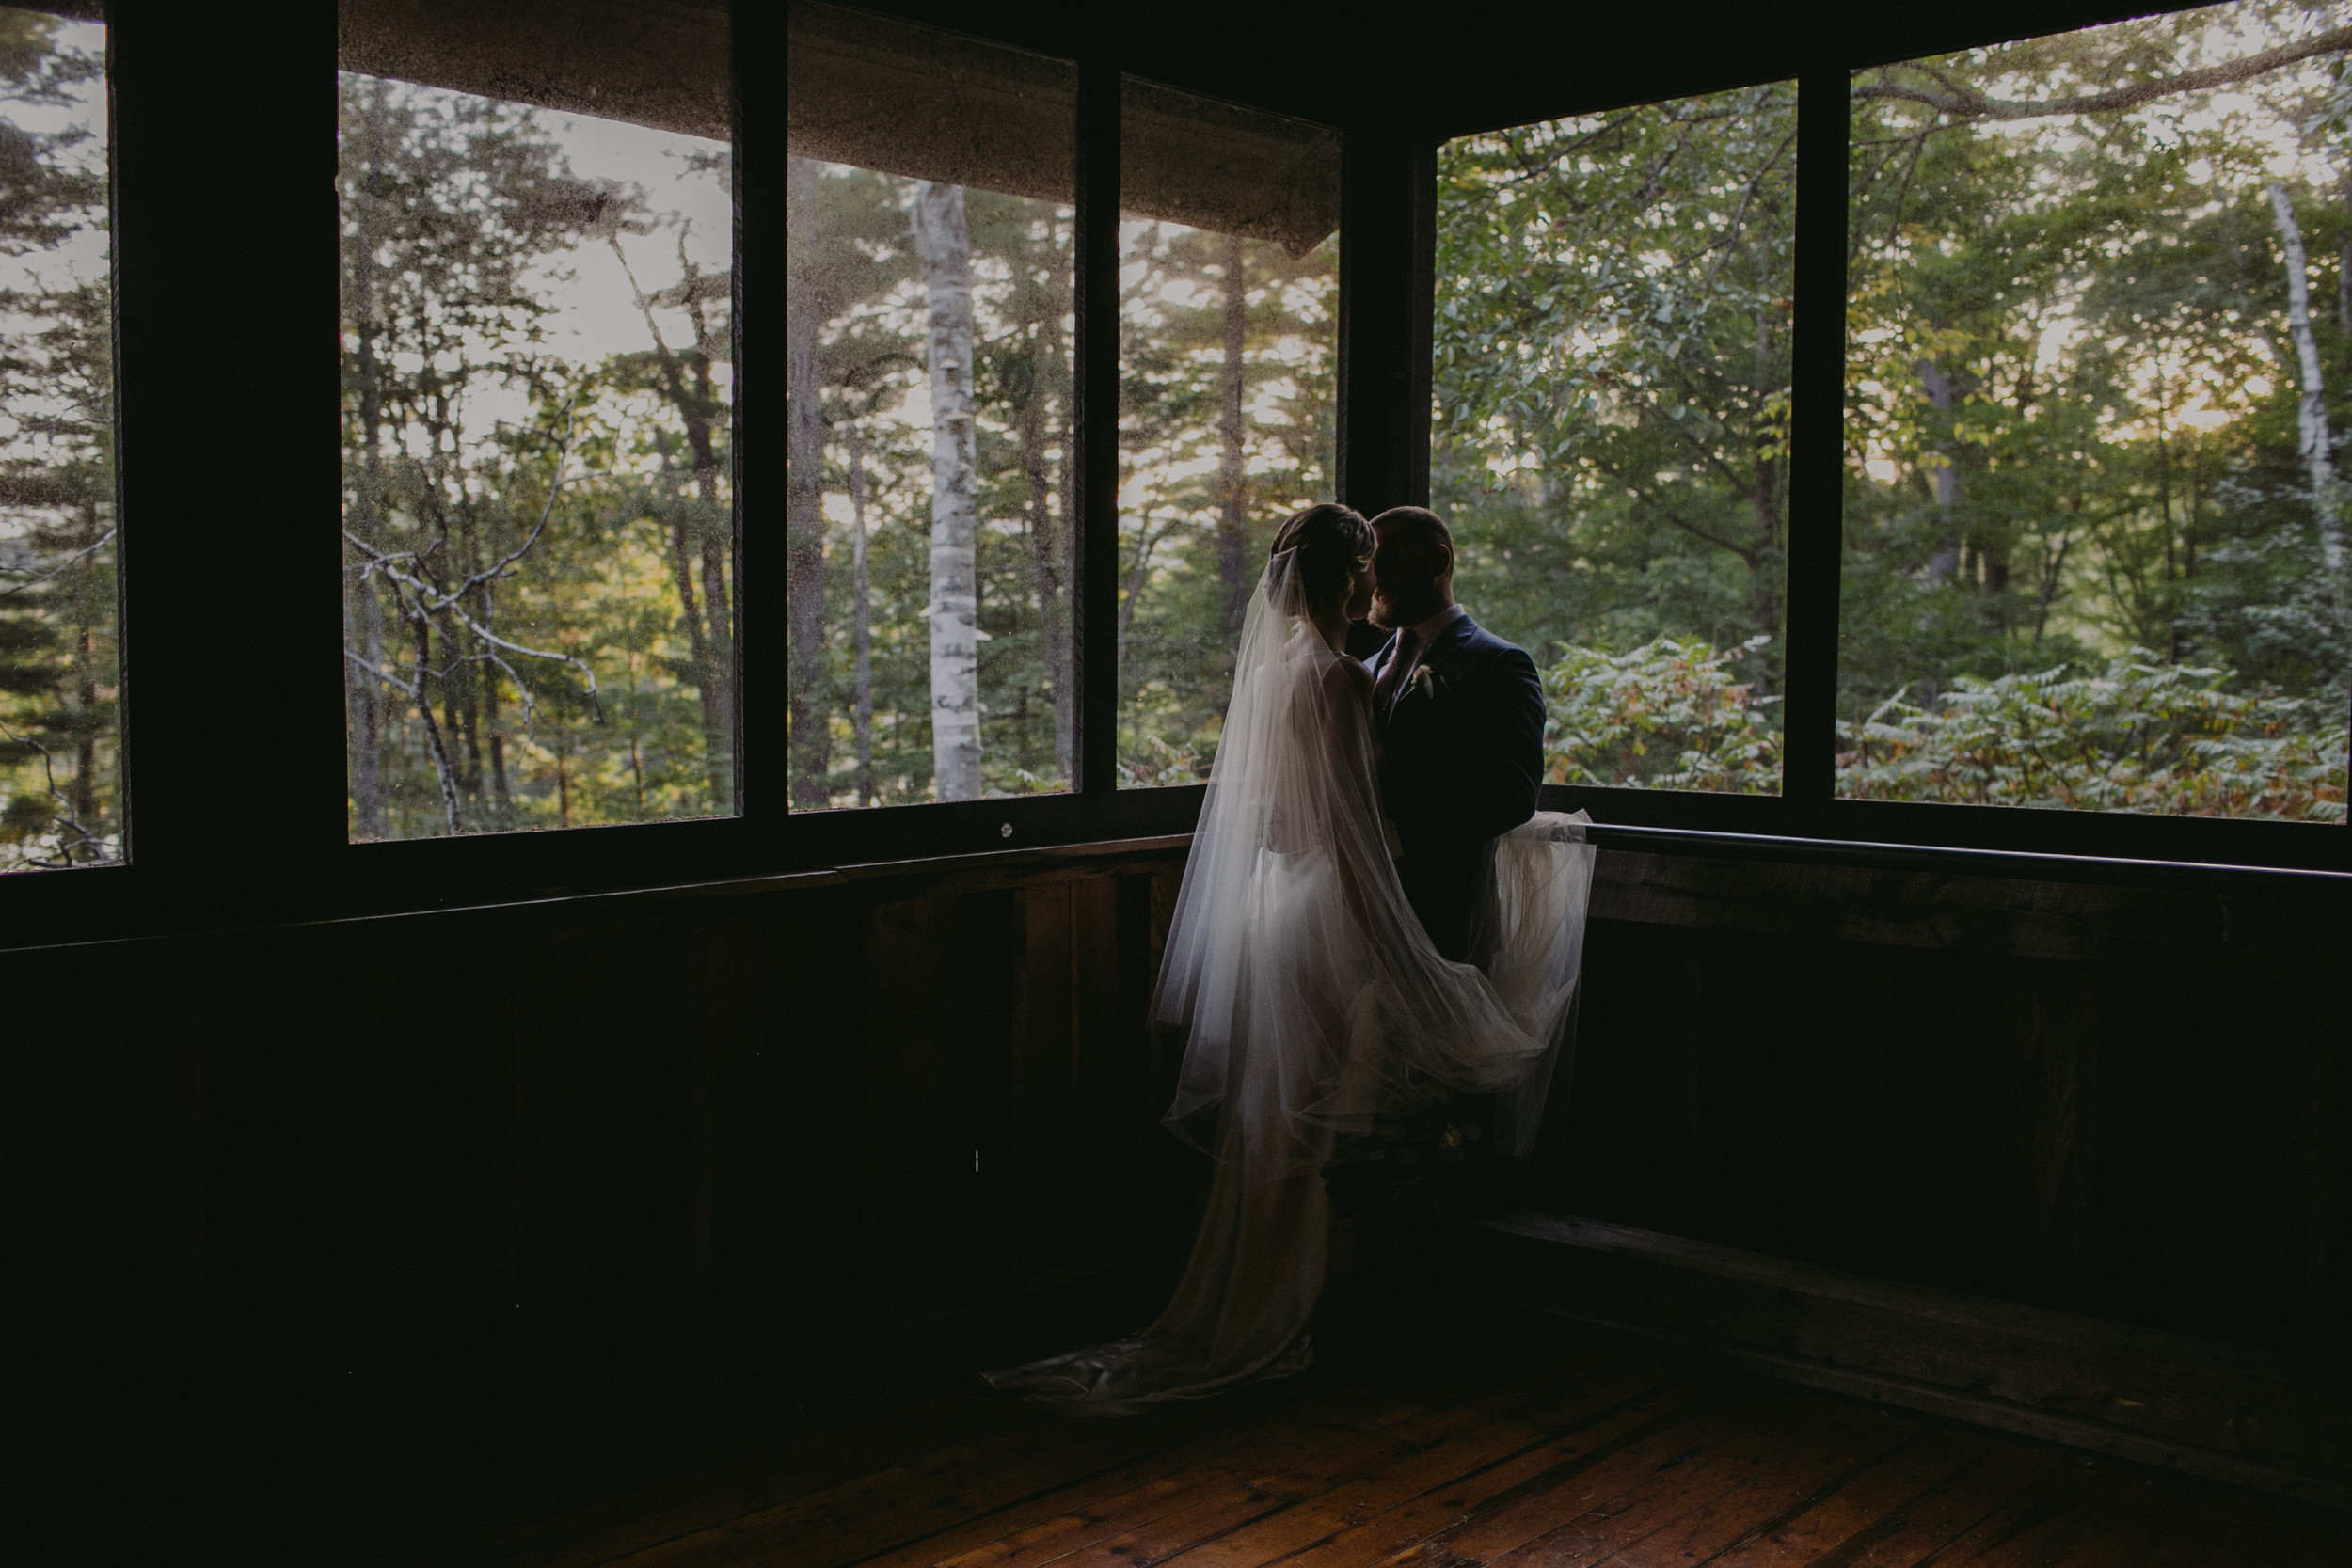 windsor mountain summer camp wedding NH chellise michael photography 1811.jpg